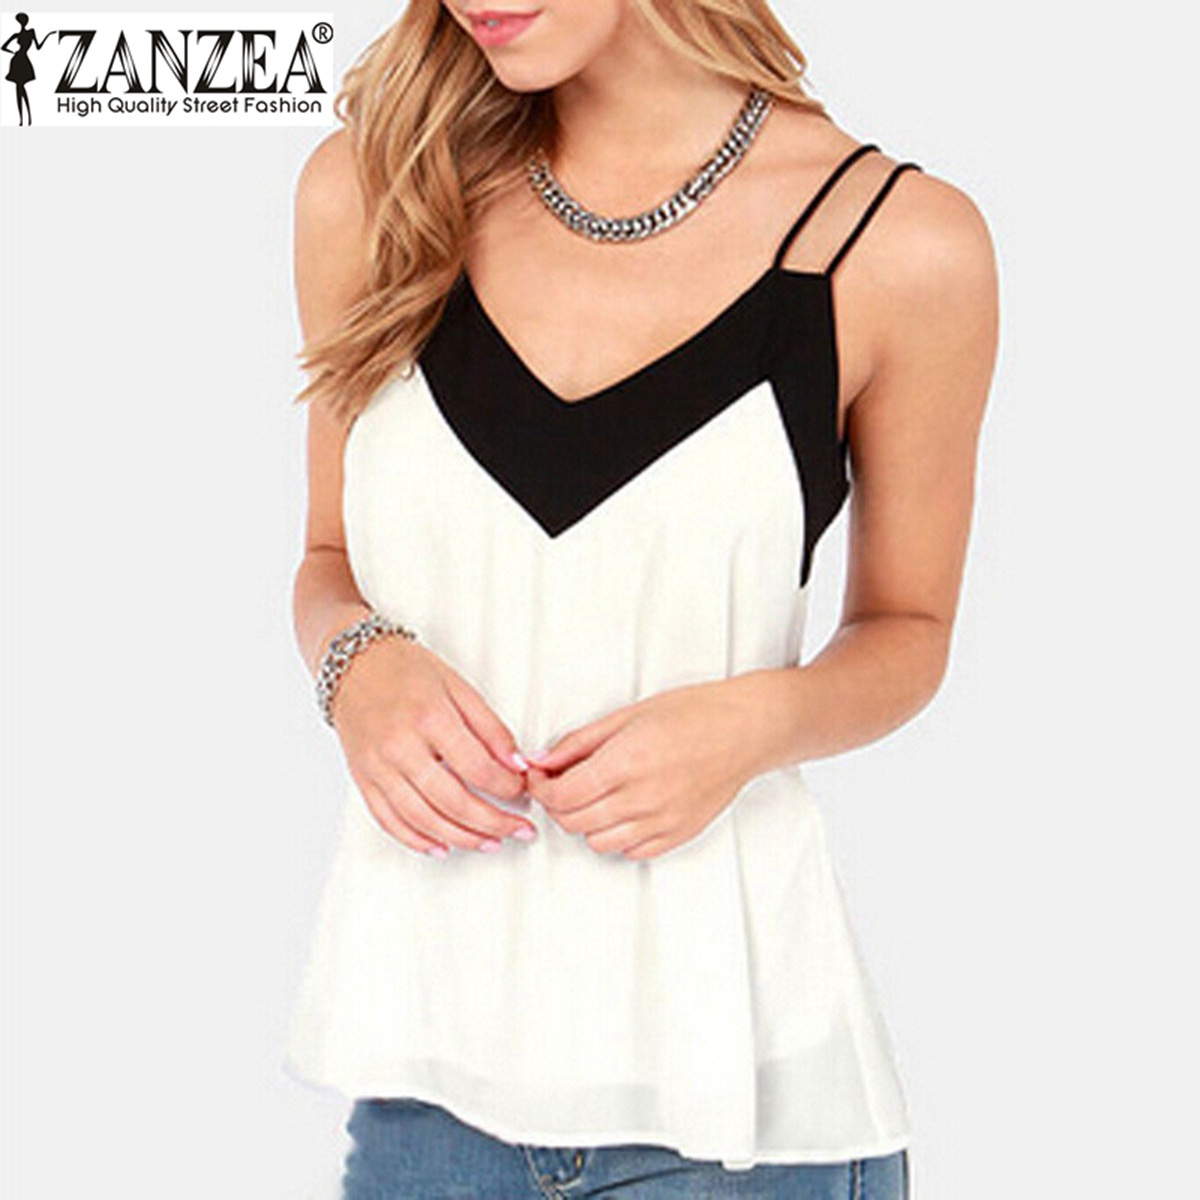 2019 Summer Style Tank Top Vest Women V-Neck Sleeveless Halter   Blouse     Shirt   Sexy Casual Loose Tops Chiffon Blusas Plus Size